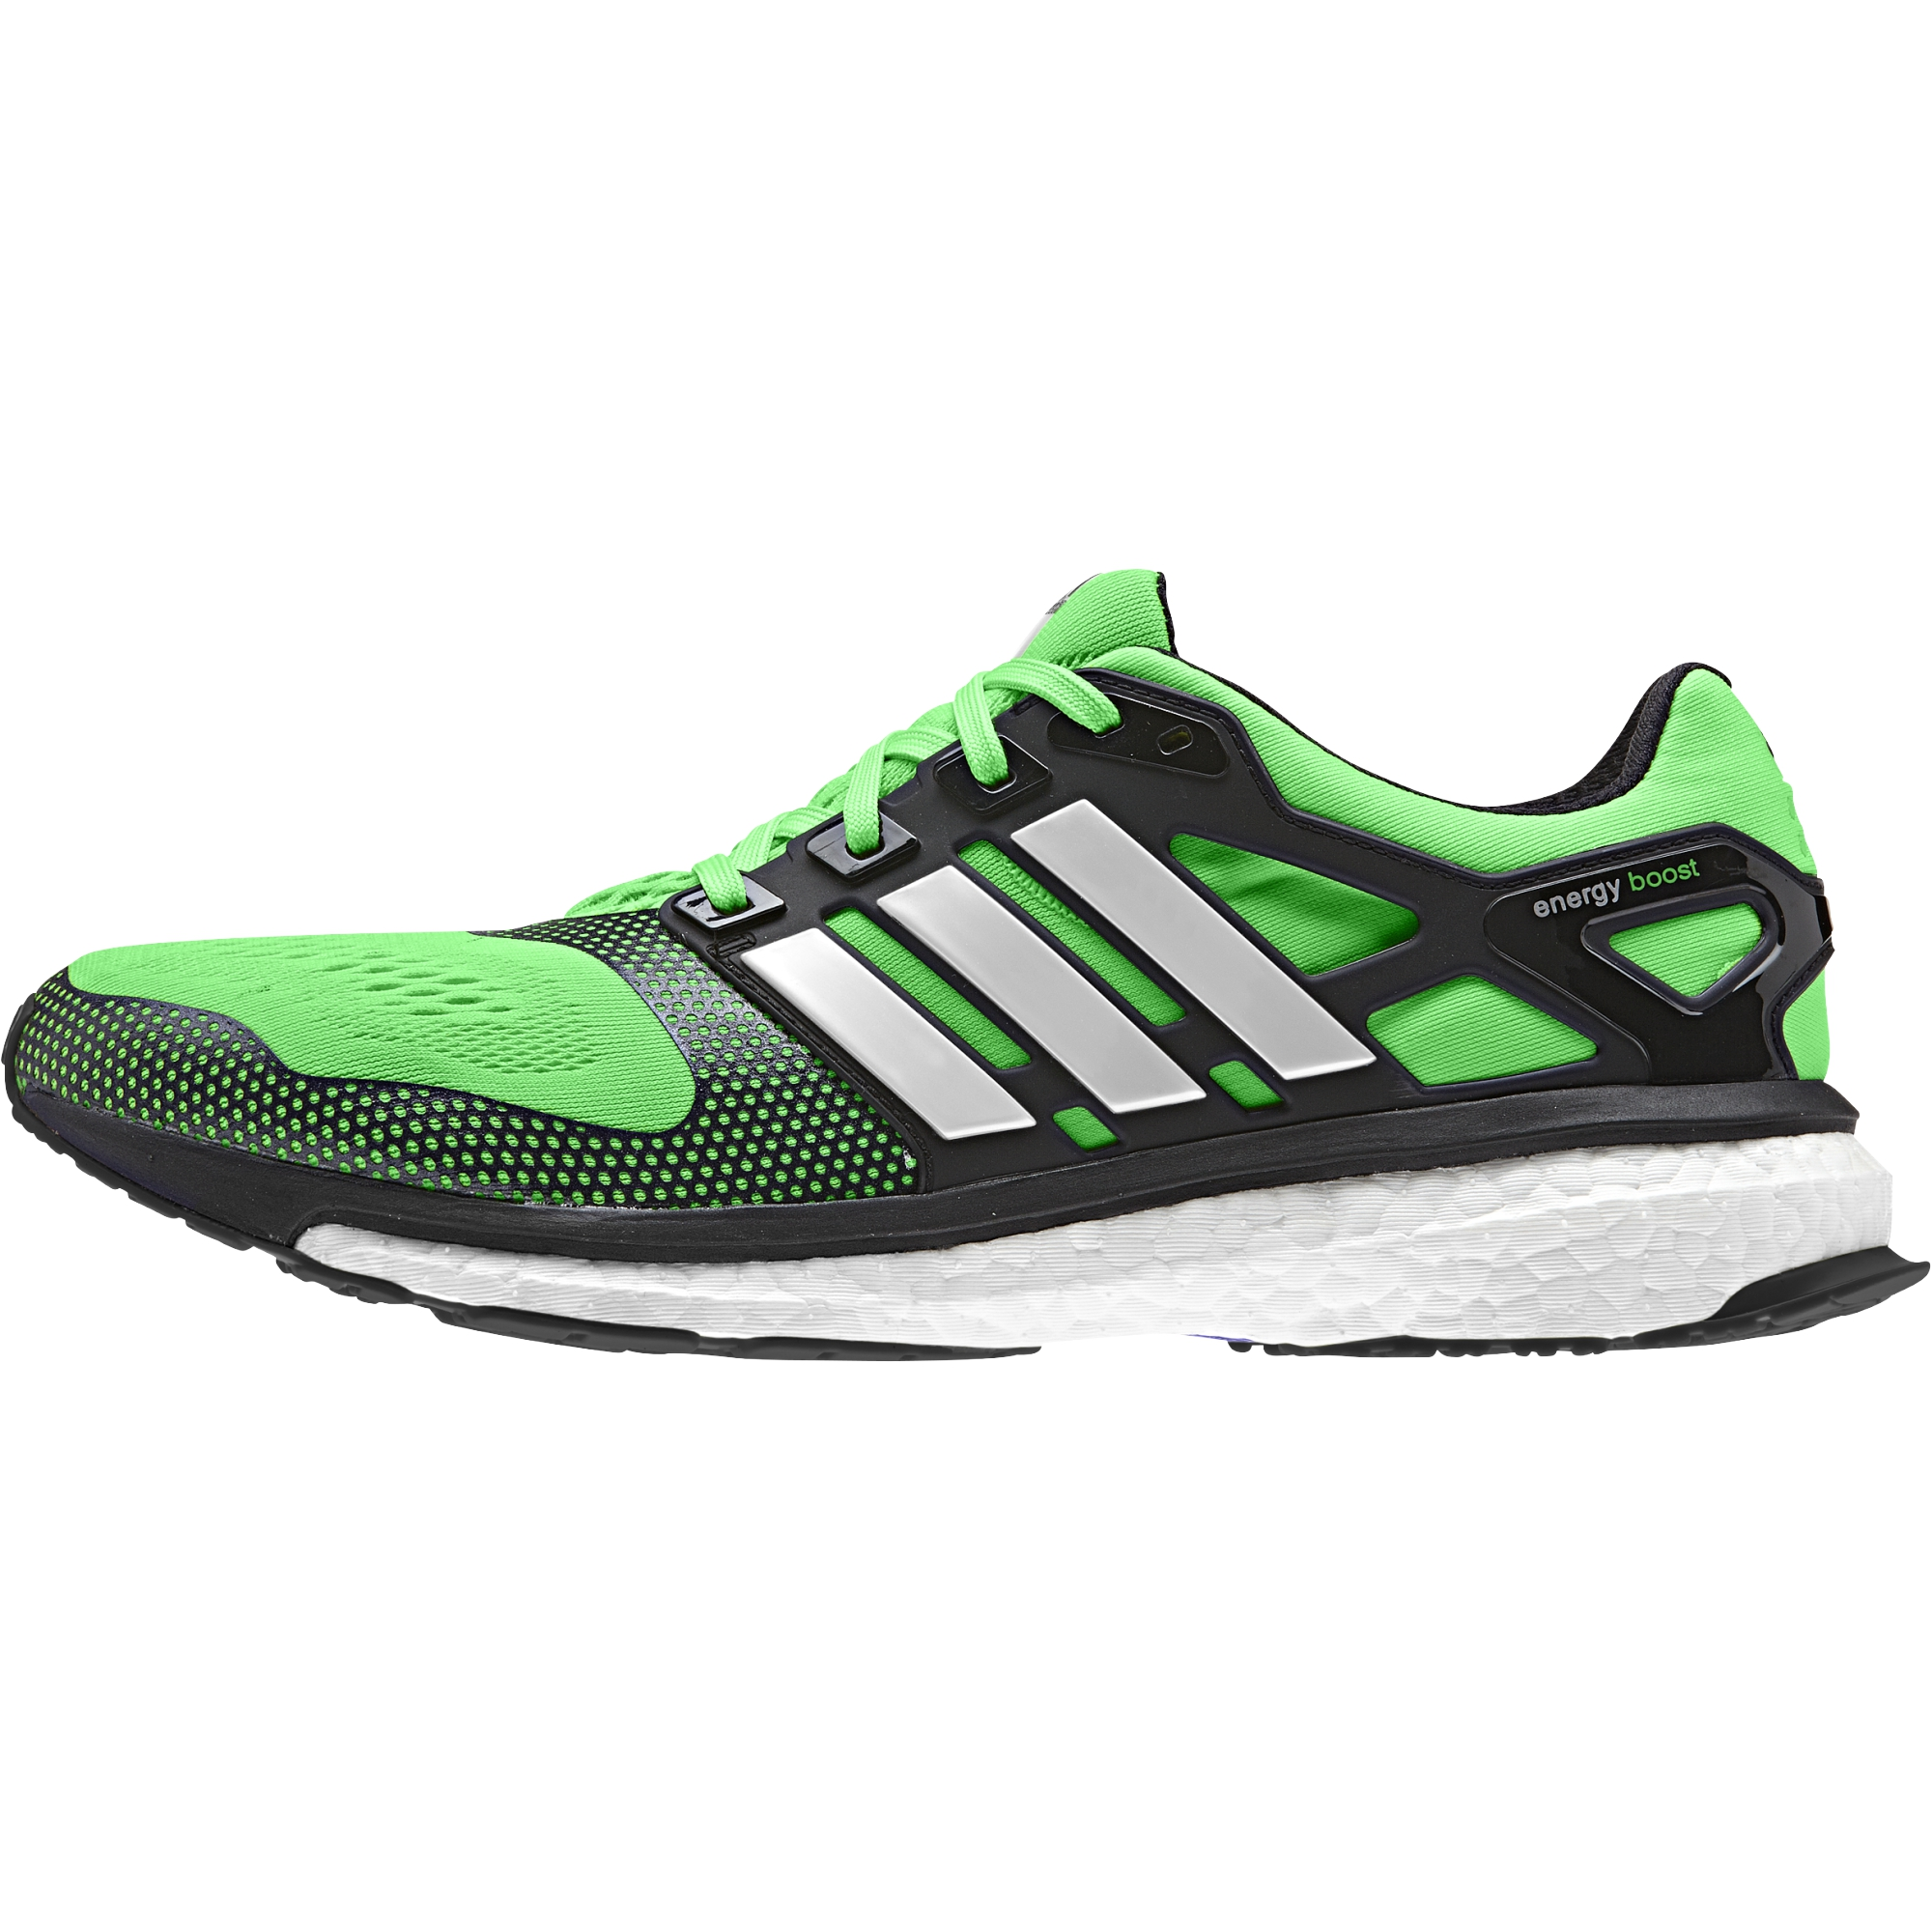 Adidas Energy Boost 2 Esm W Zapatillas de running para